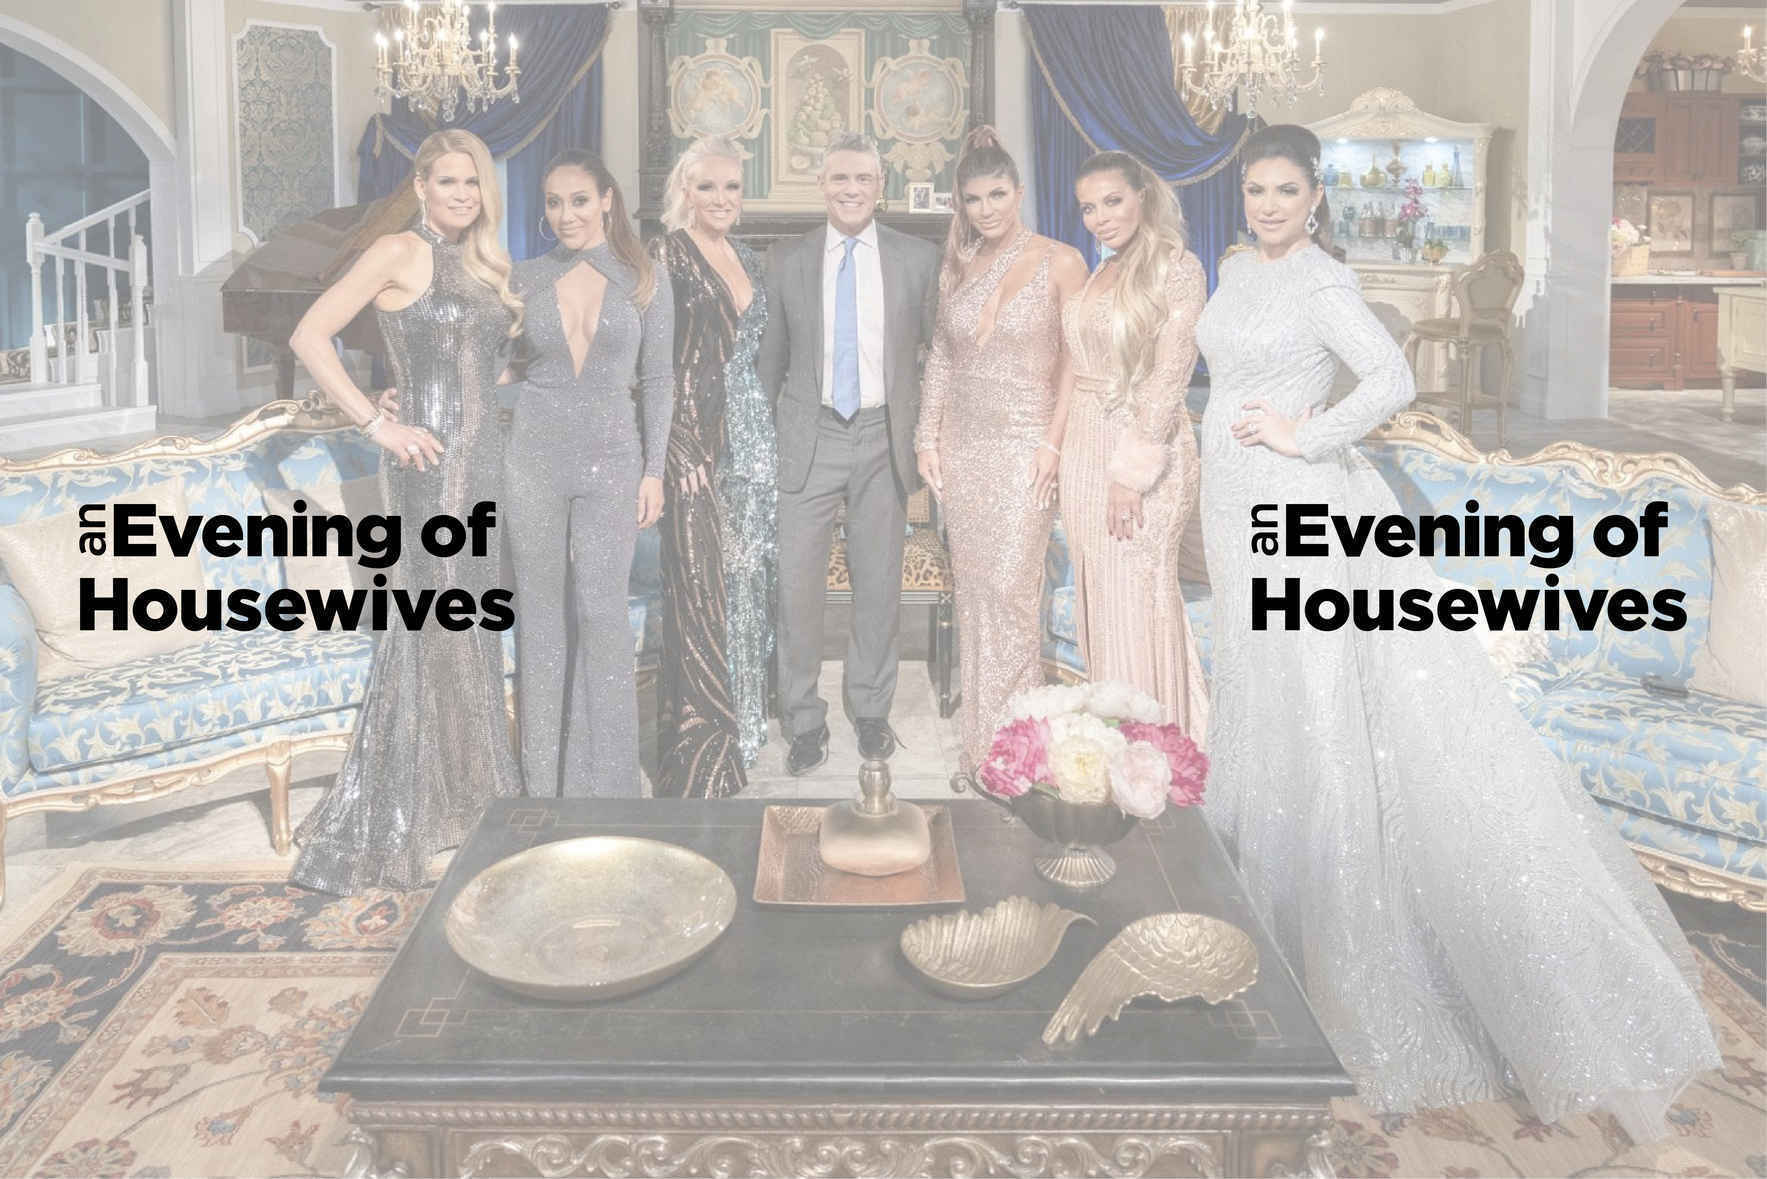 Join us on May 9th for an Evening of Housewives in Highland Park, IL image